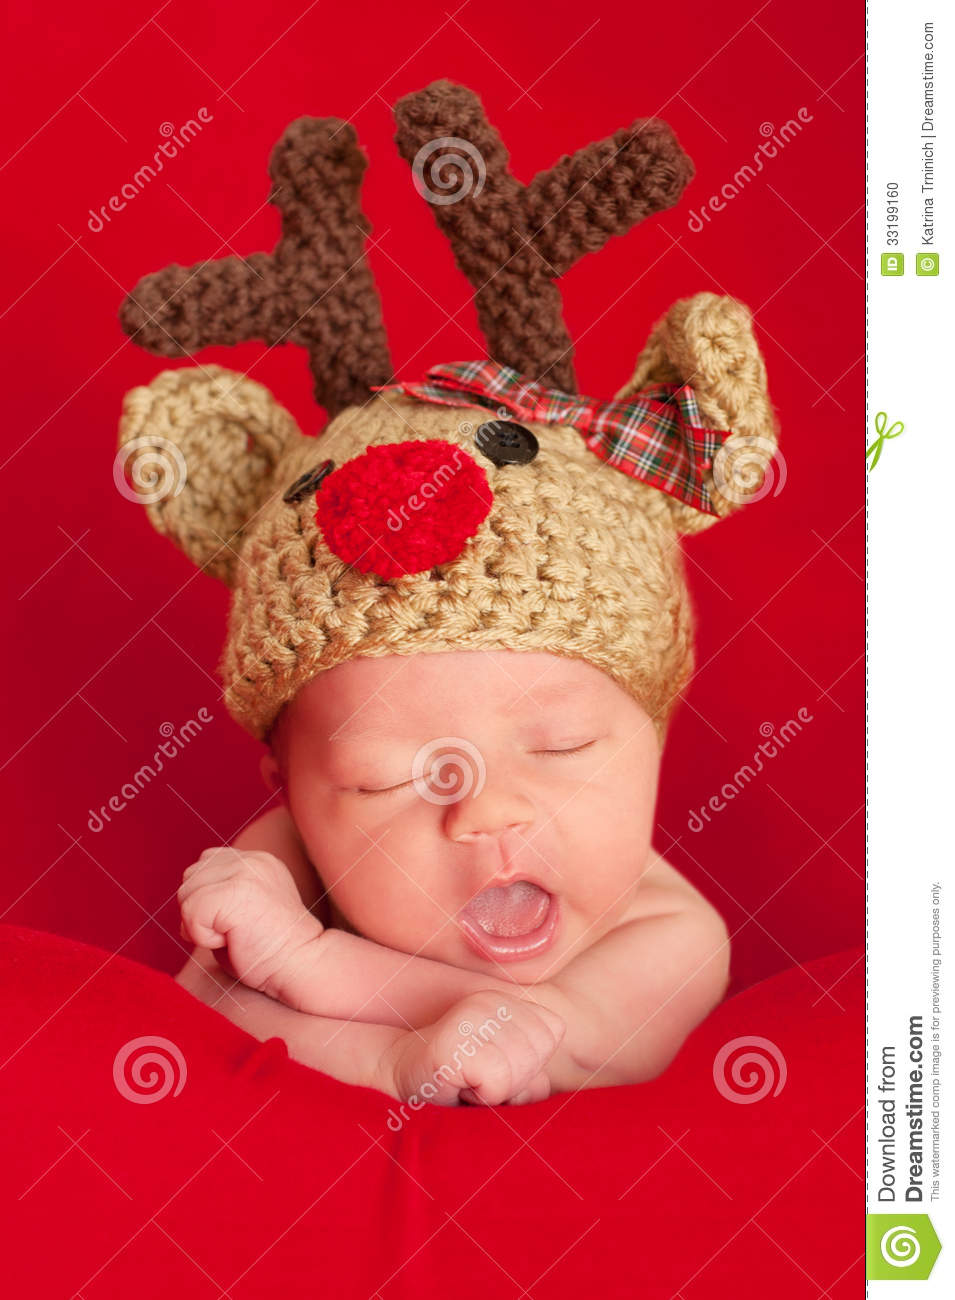 d671ca2db719d Newborn Baby Wearing A Red-Nosed Reindeer Hat Stock Photo - Image of ...